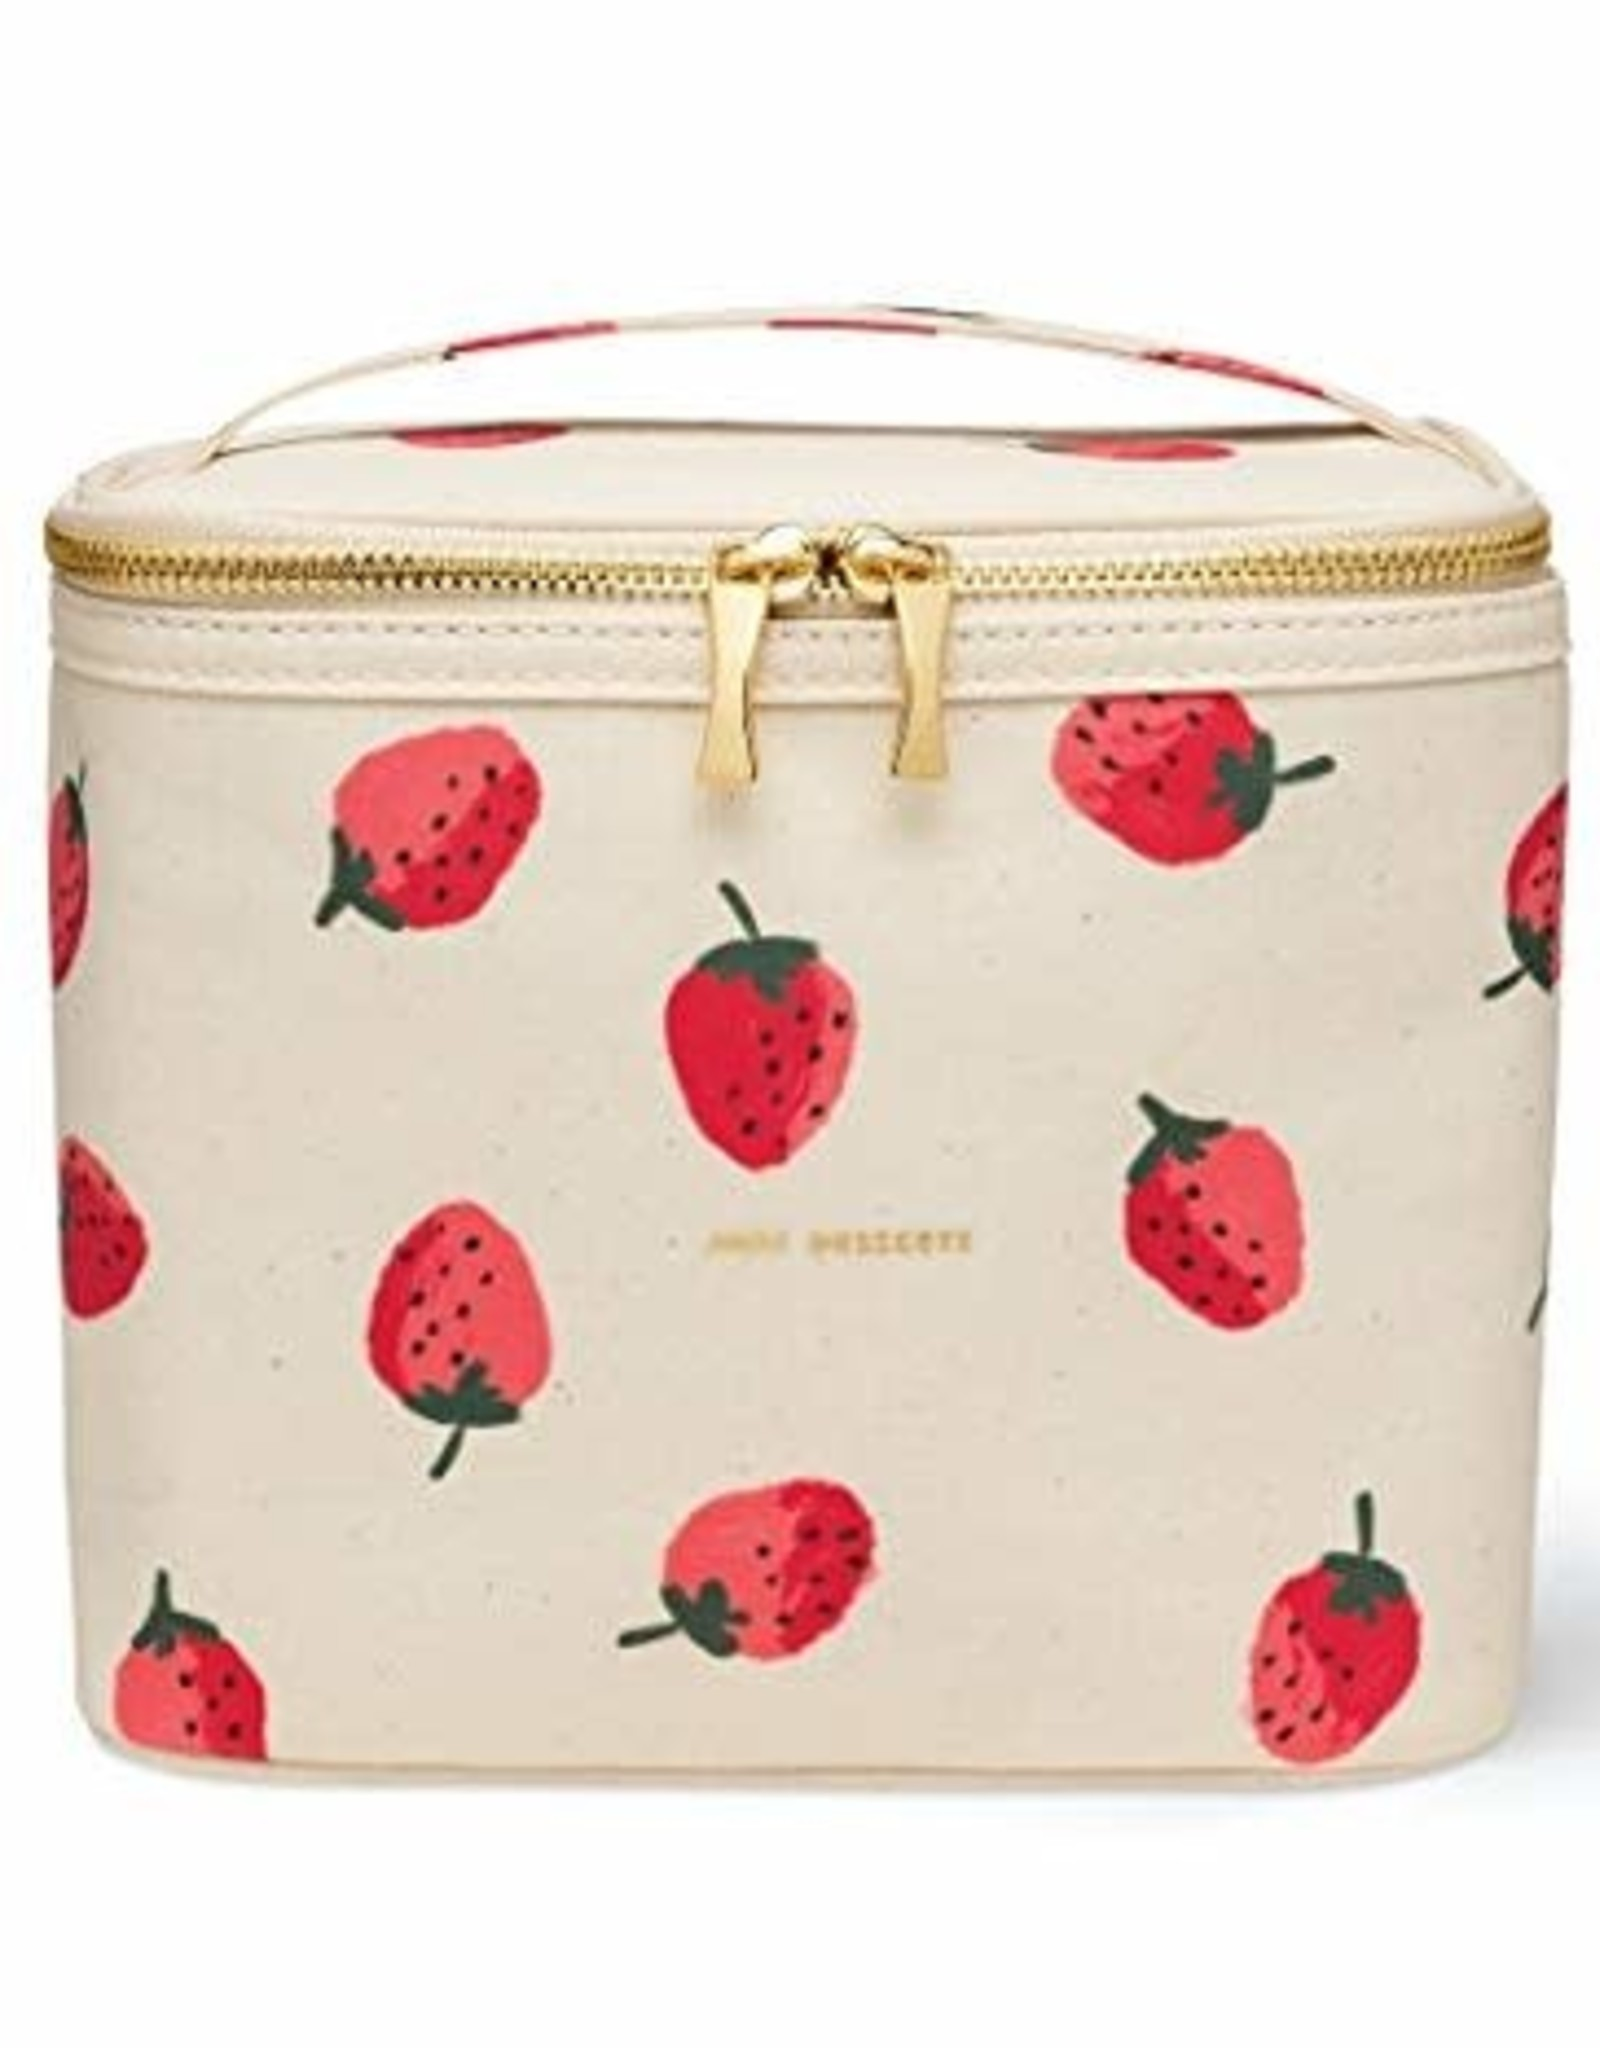 Kate Spade Strawberry Lunch Tote